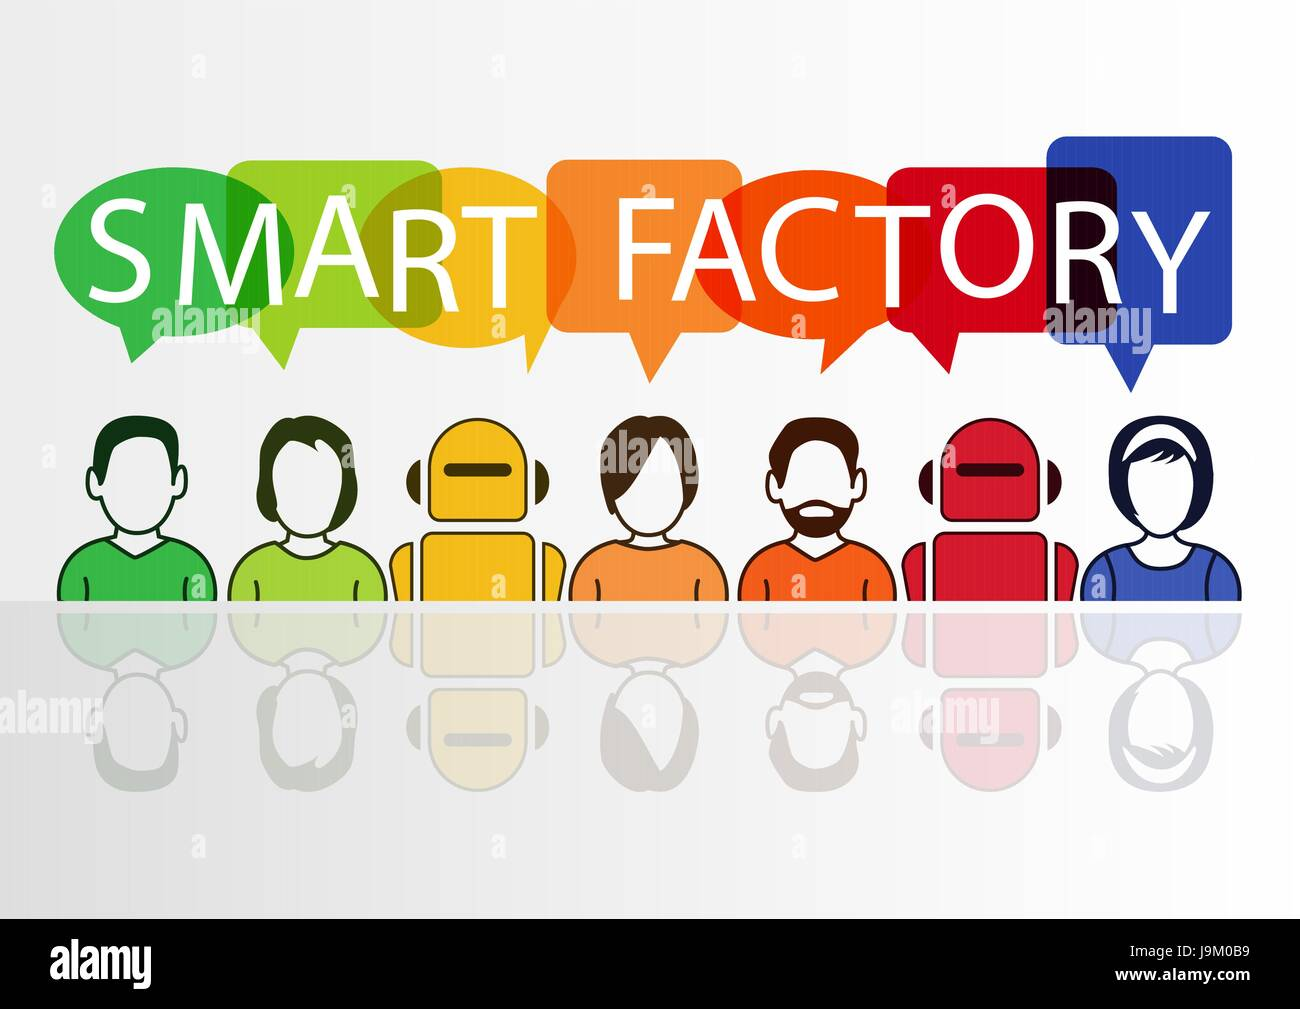 Smart Factory concept as vector illustration - Stock Vector